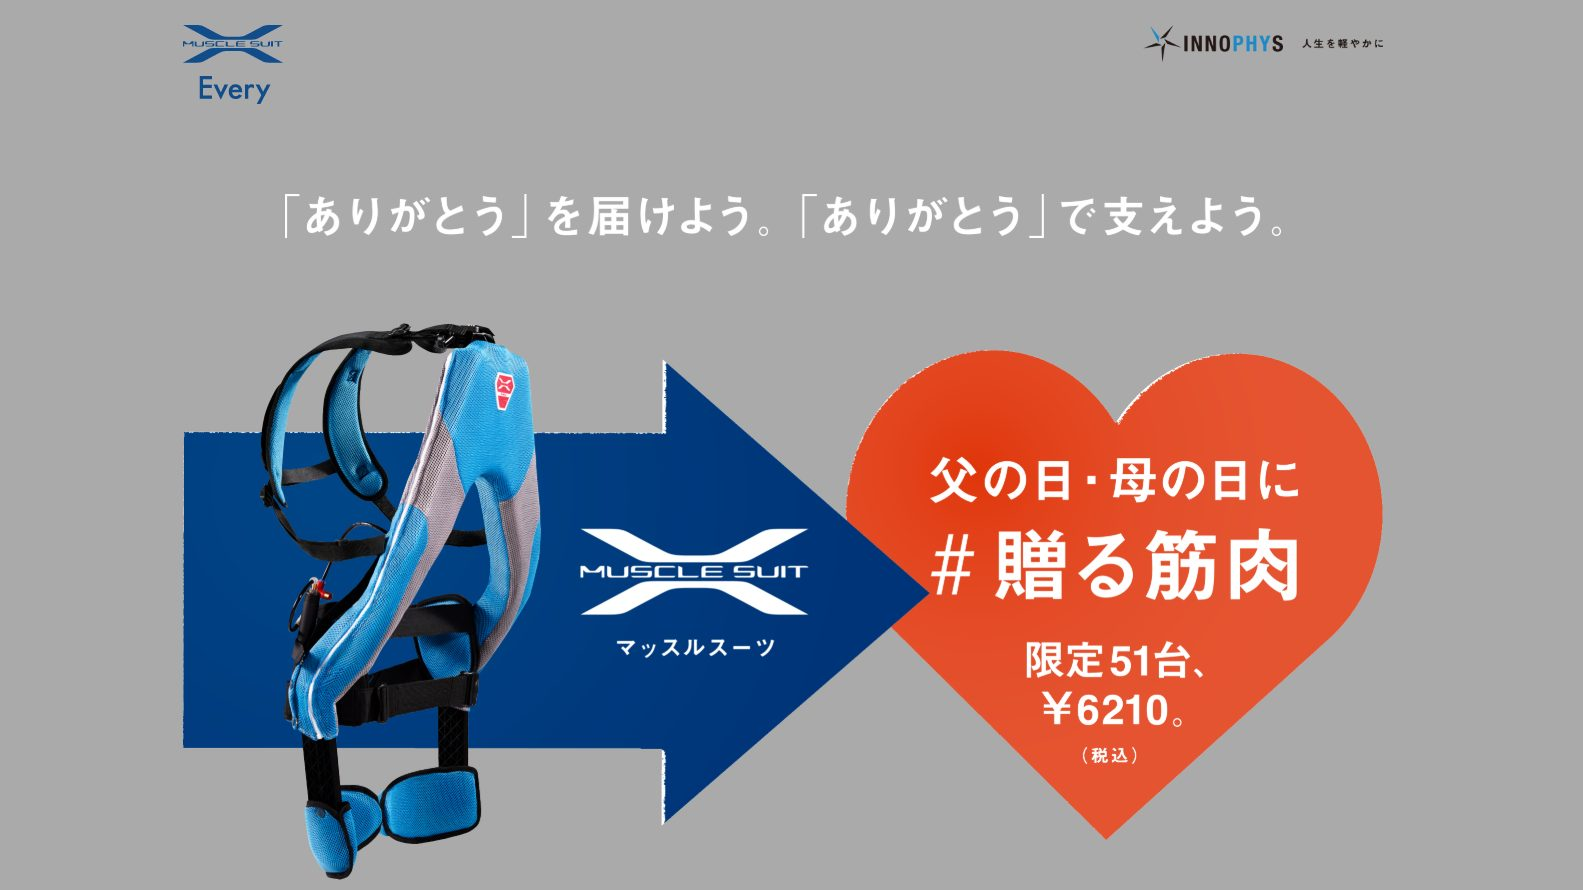 twitter-campaign-mothers-day-innophys